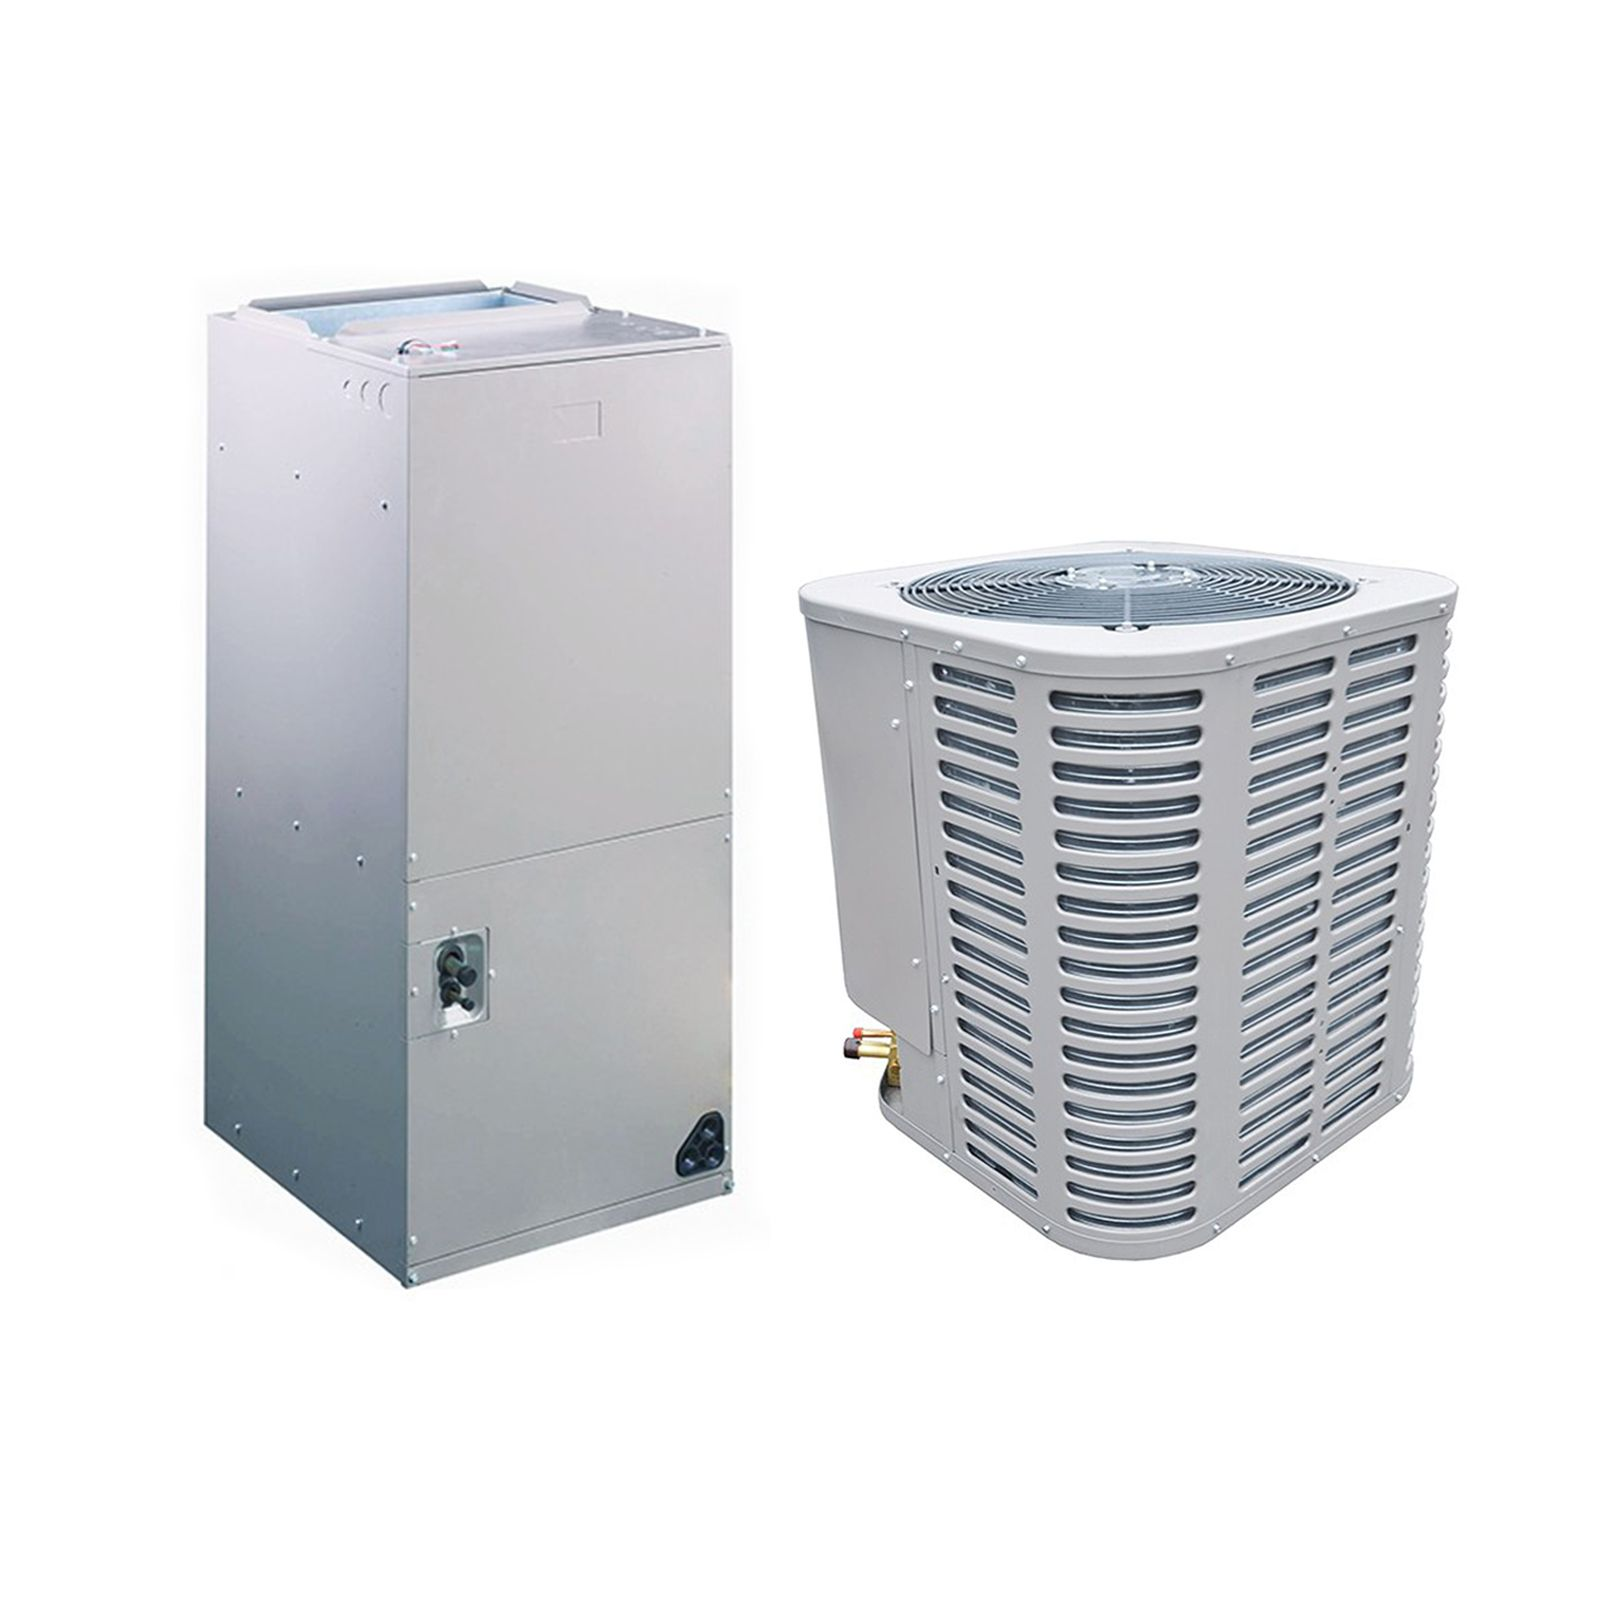 Ameristar ahri 7947636 3 ton 14 seer1095 eer m4hp4 series ameristar ahri 7947636 3 ton 14 seer1095 eer m4hp4 series heat pump split system swarovskicordoba Image collections